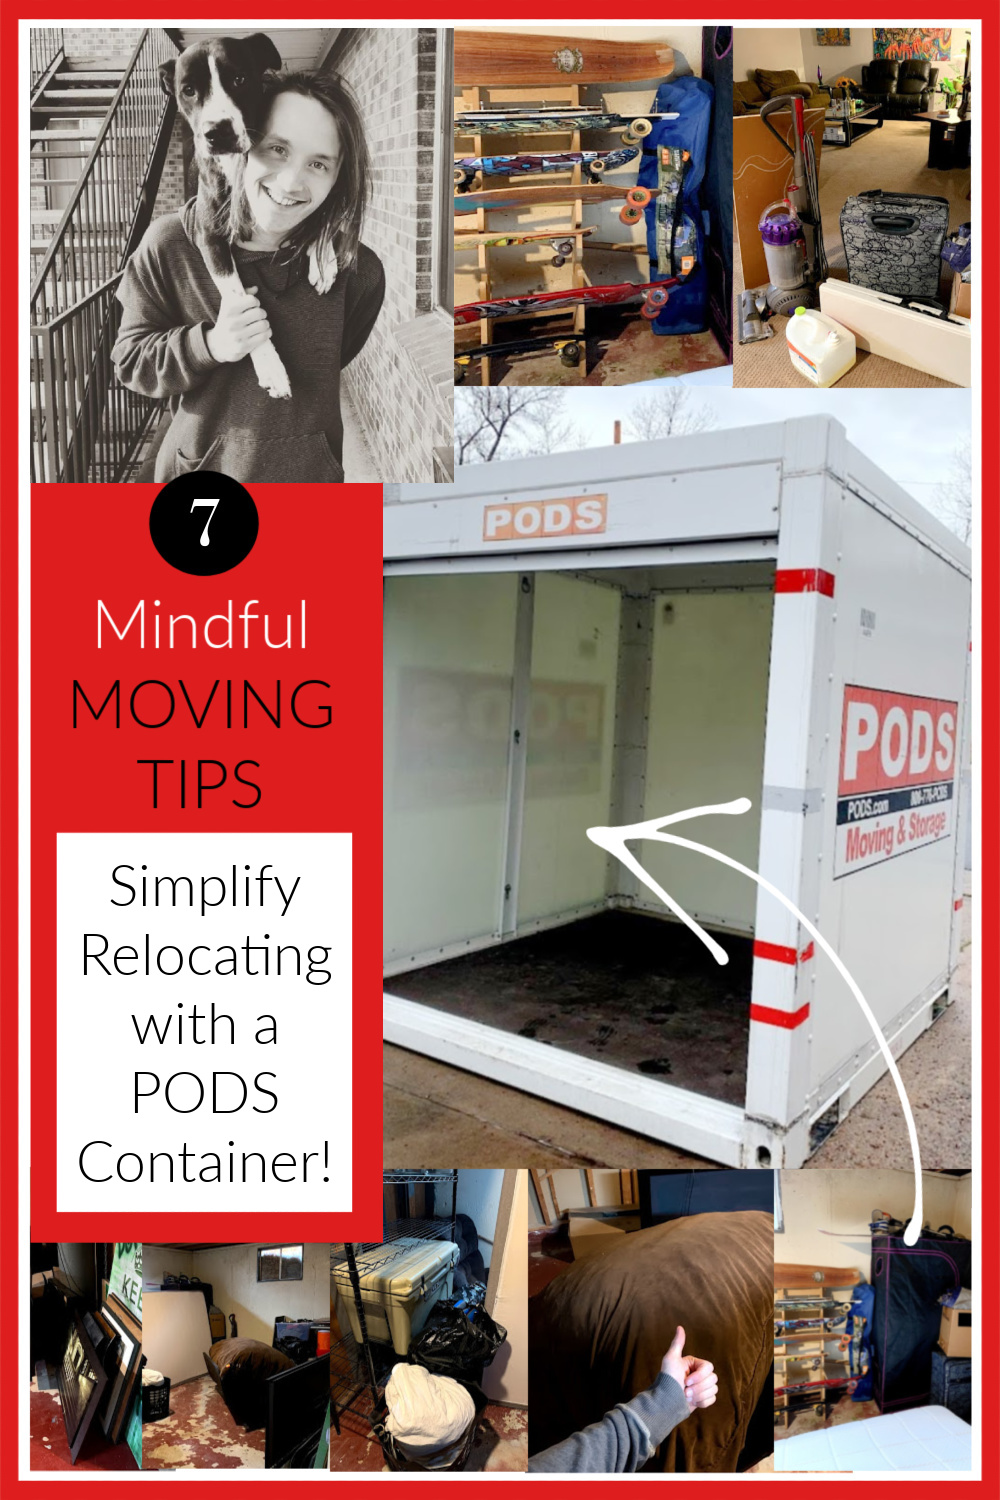 7 mindful moving tips to simplify relocating with a container - Hello Lovely .#podscontainer #movingtips #movinghacks #relocating